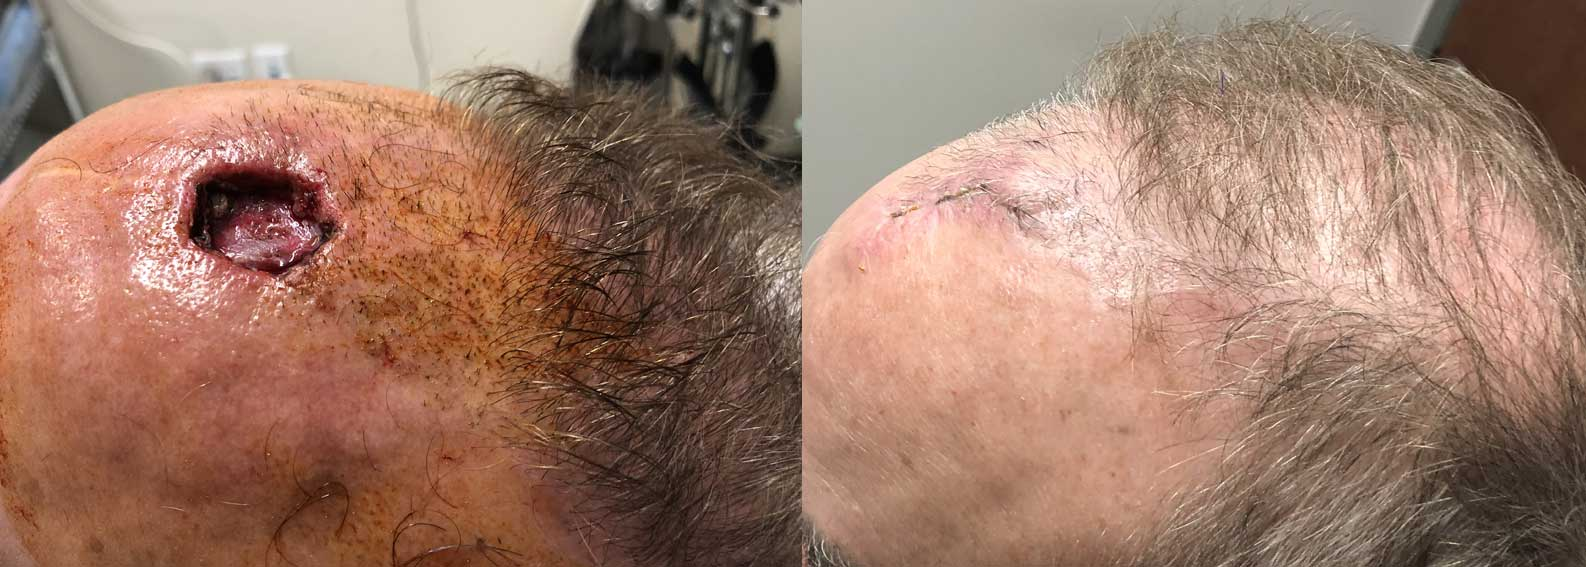 Before & after of Skin cancer Surgery